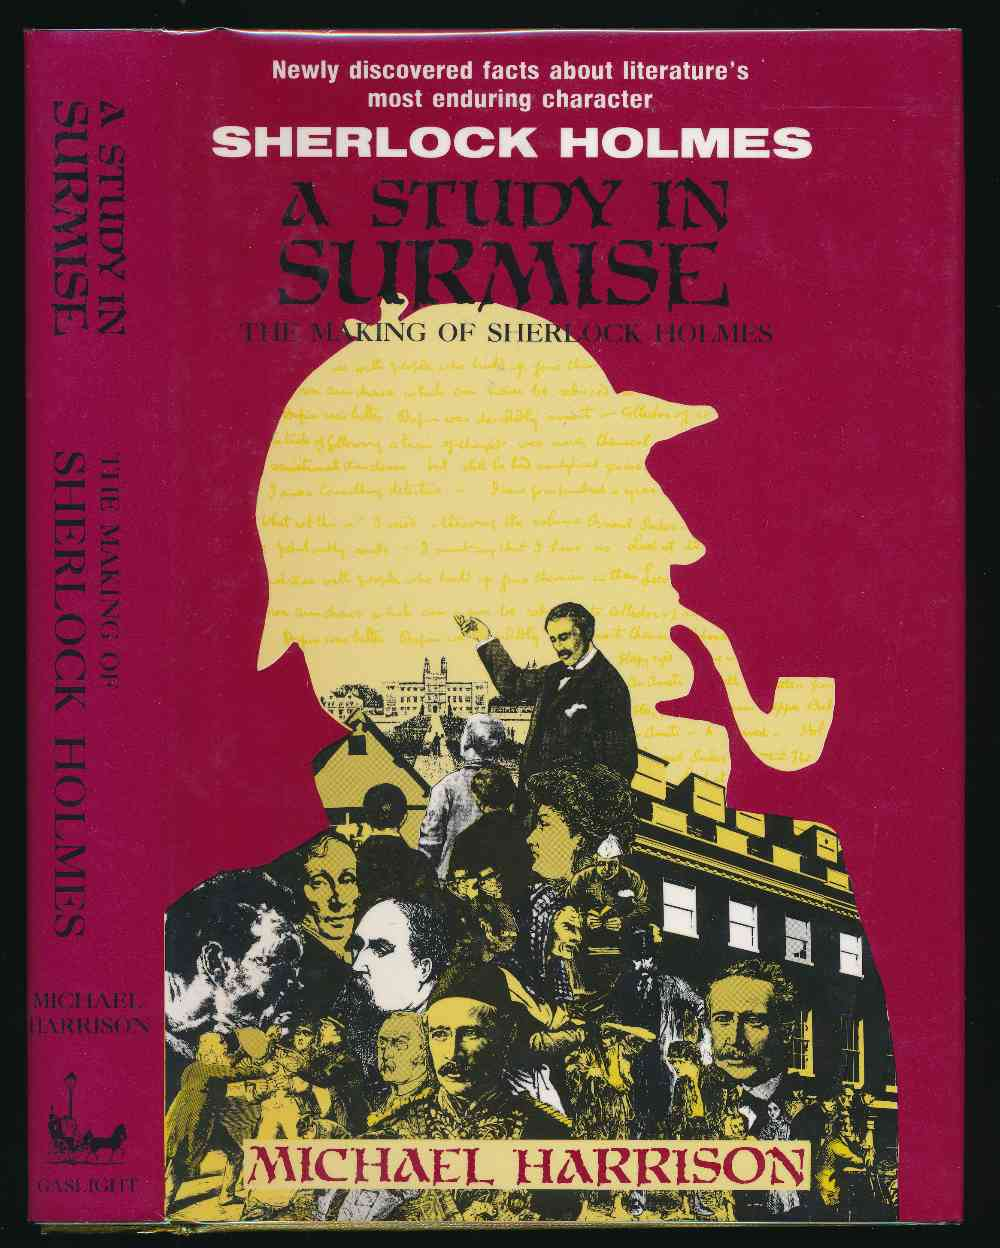 A study in surmise : the making of Sherlock Holmes